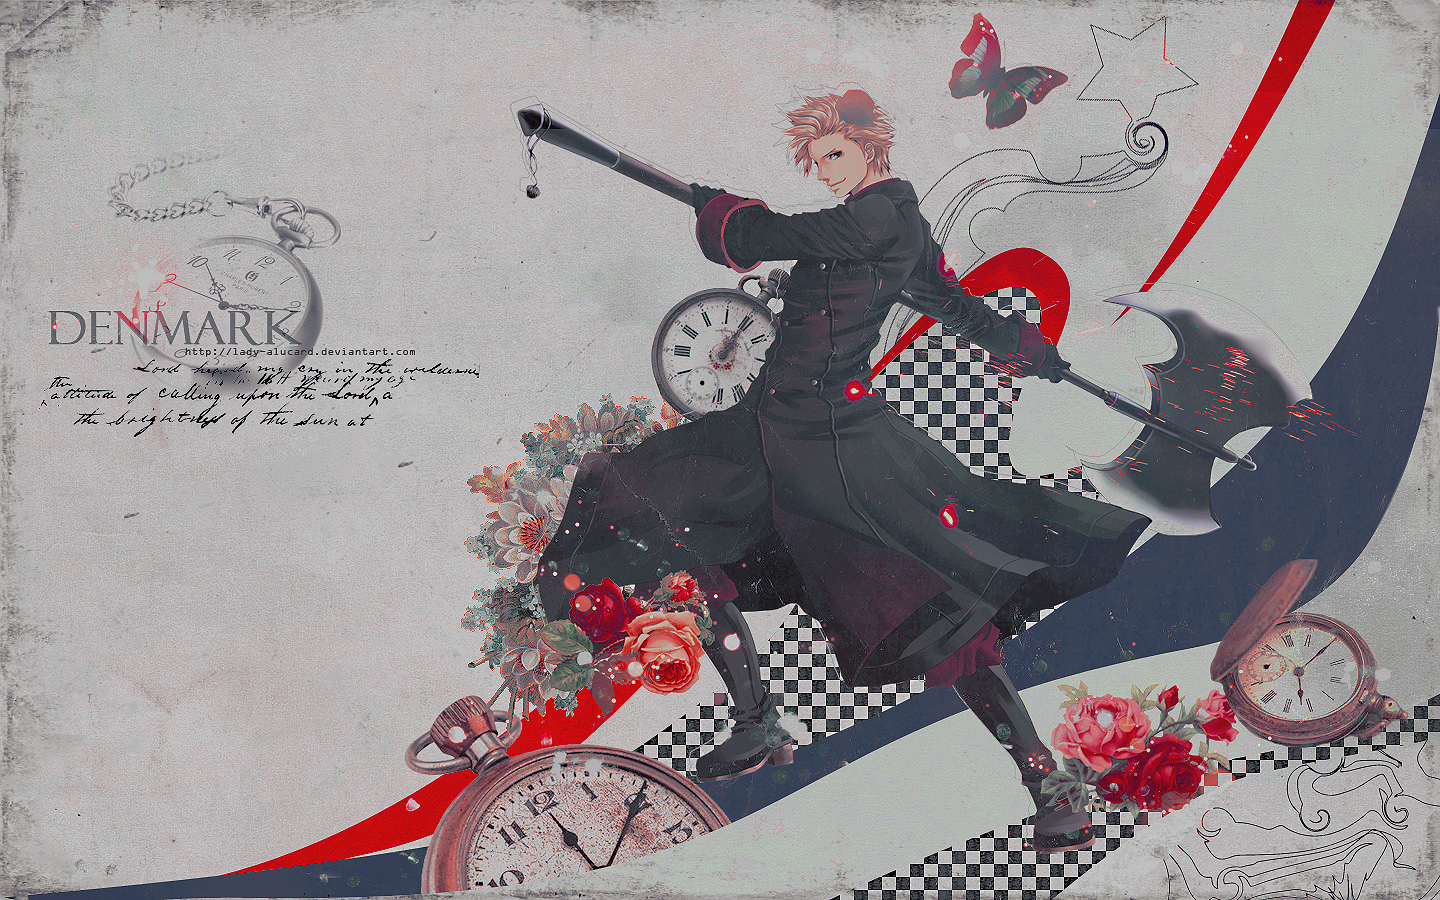 Denmark_-_Hetalia wallpaper by lady-alucard